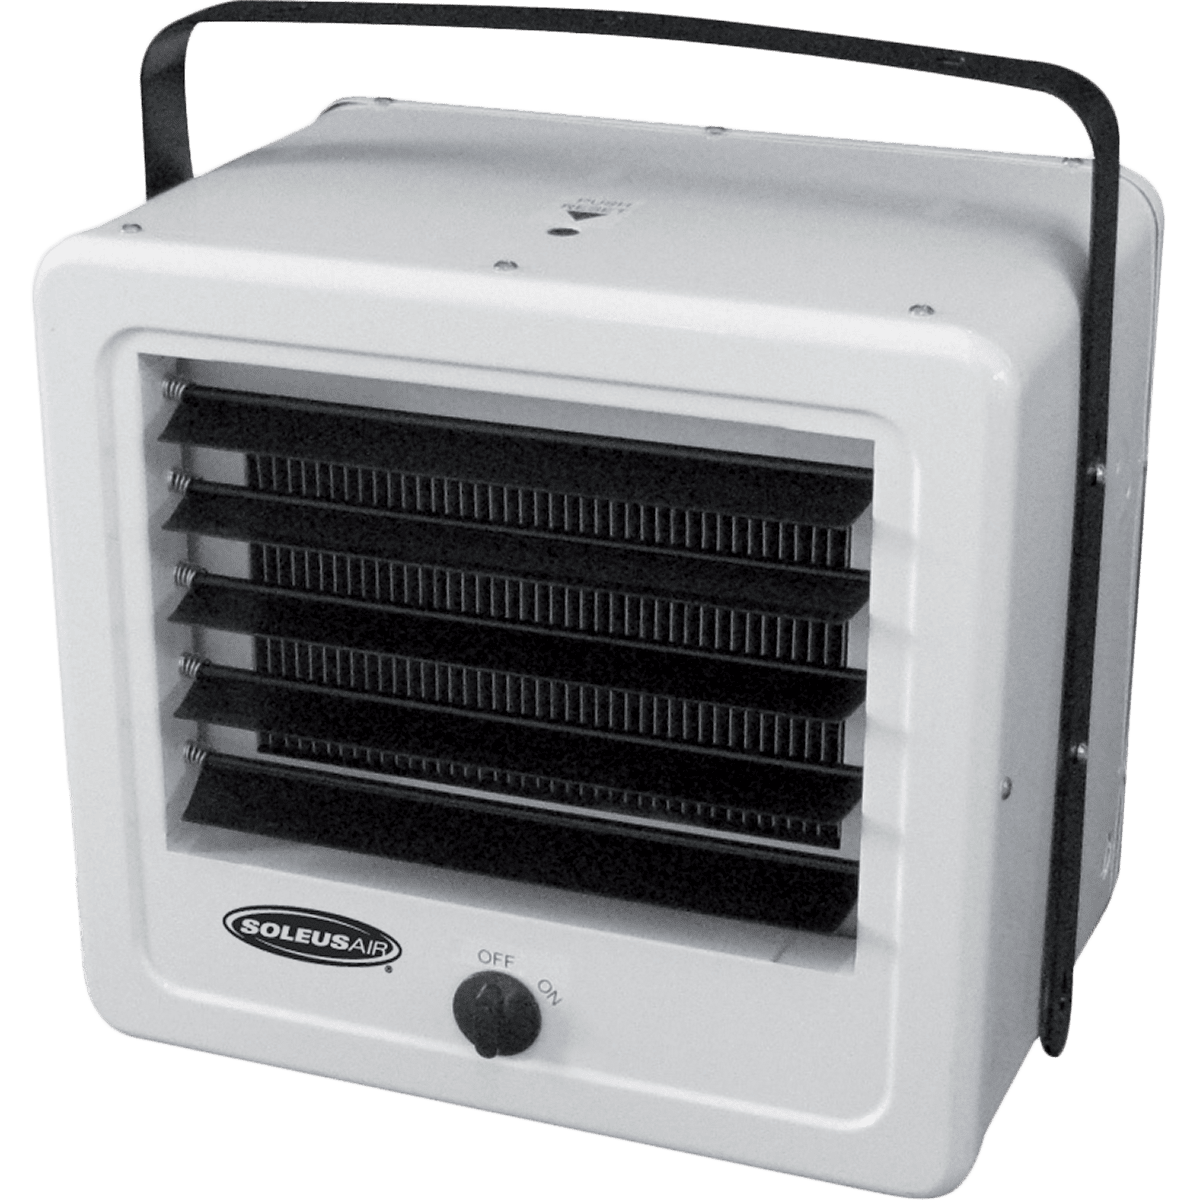 soleus air hi15003 garage heater